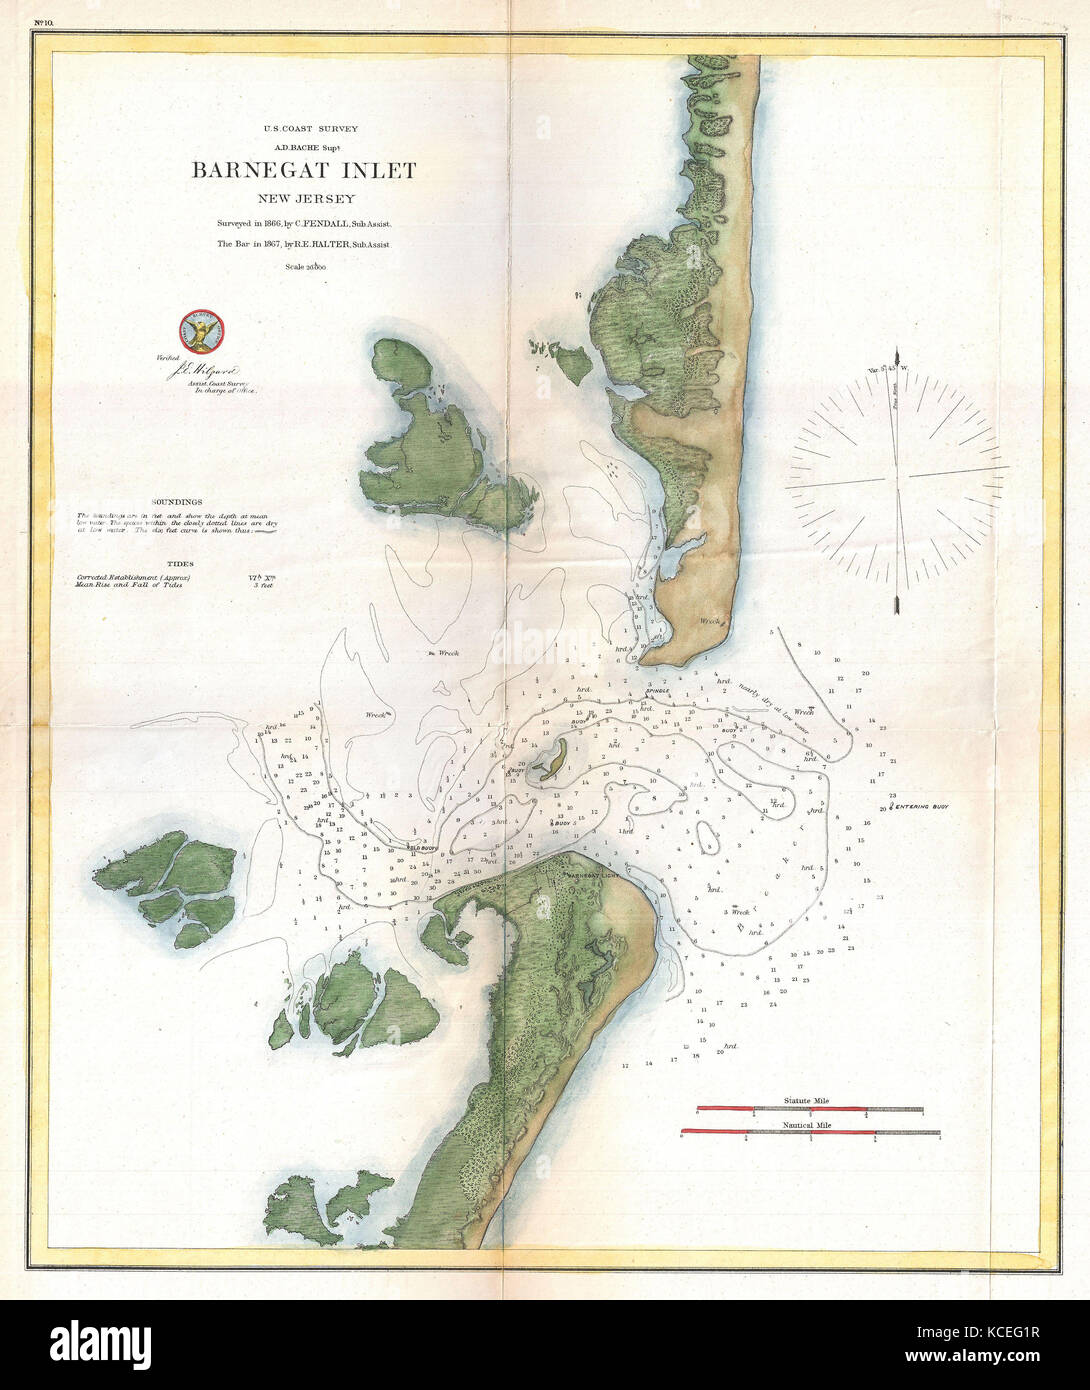 1865 Us Coast Survey Map Of Barnegat Inlet Long Beach Island - Map-of-us-in-1865